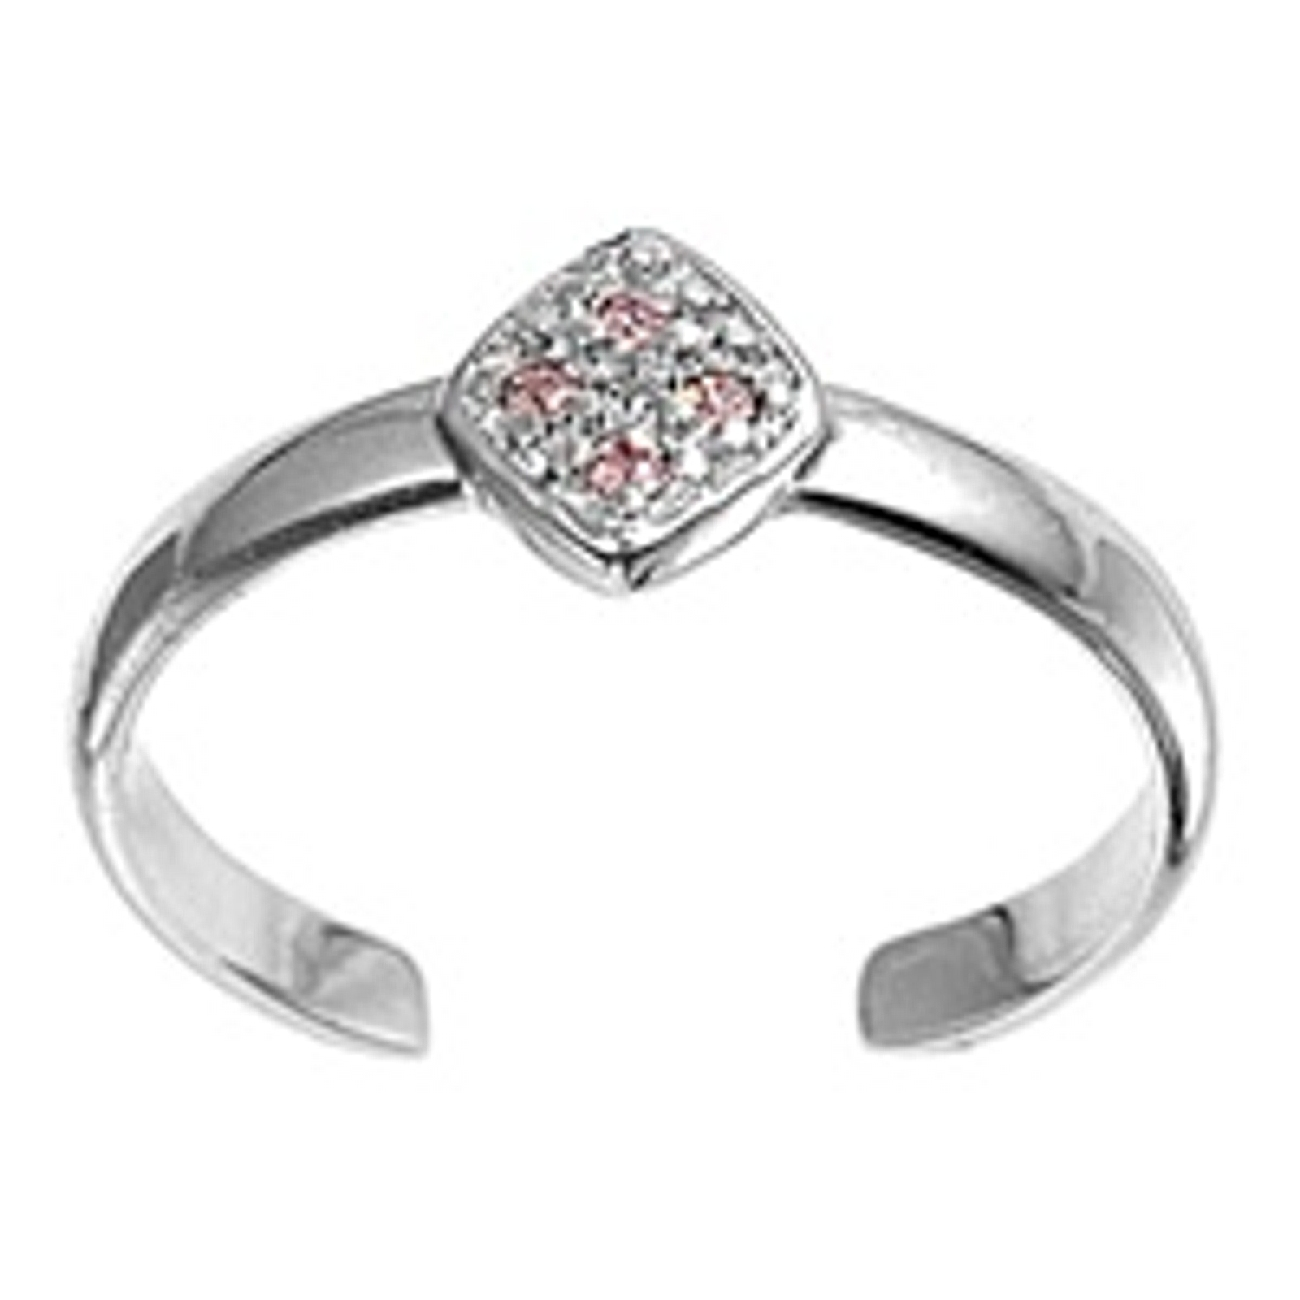 Diamond Shape With Pink Cubic Zirconia Stones Adjustable Toe Ring